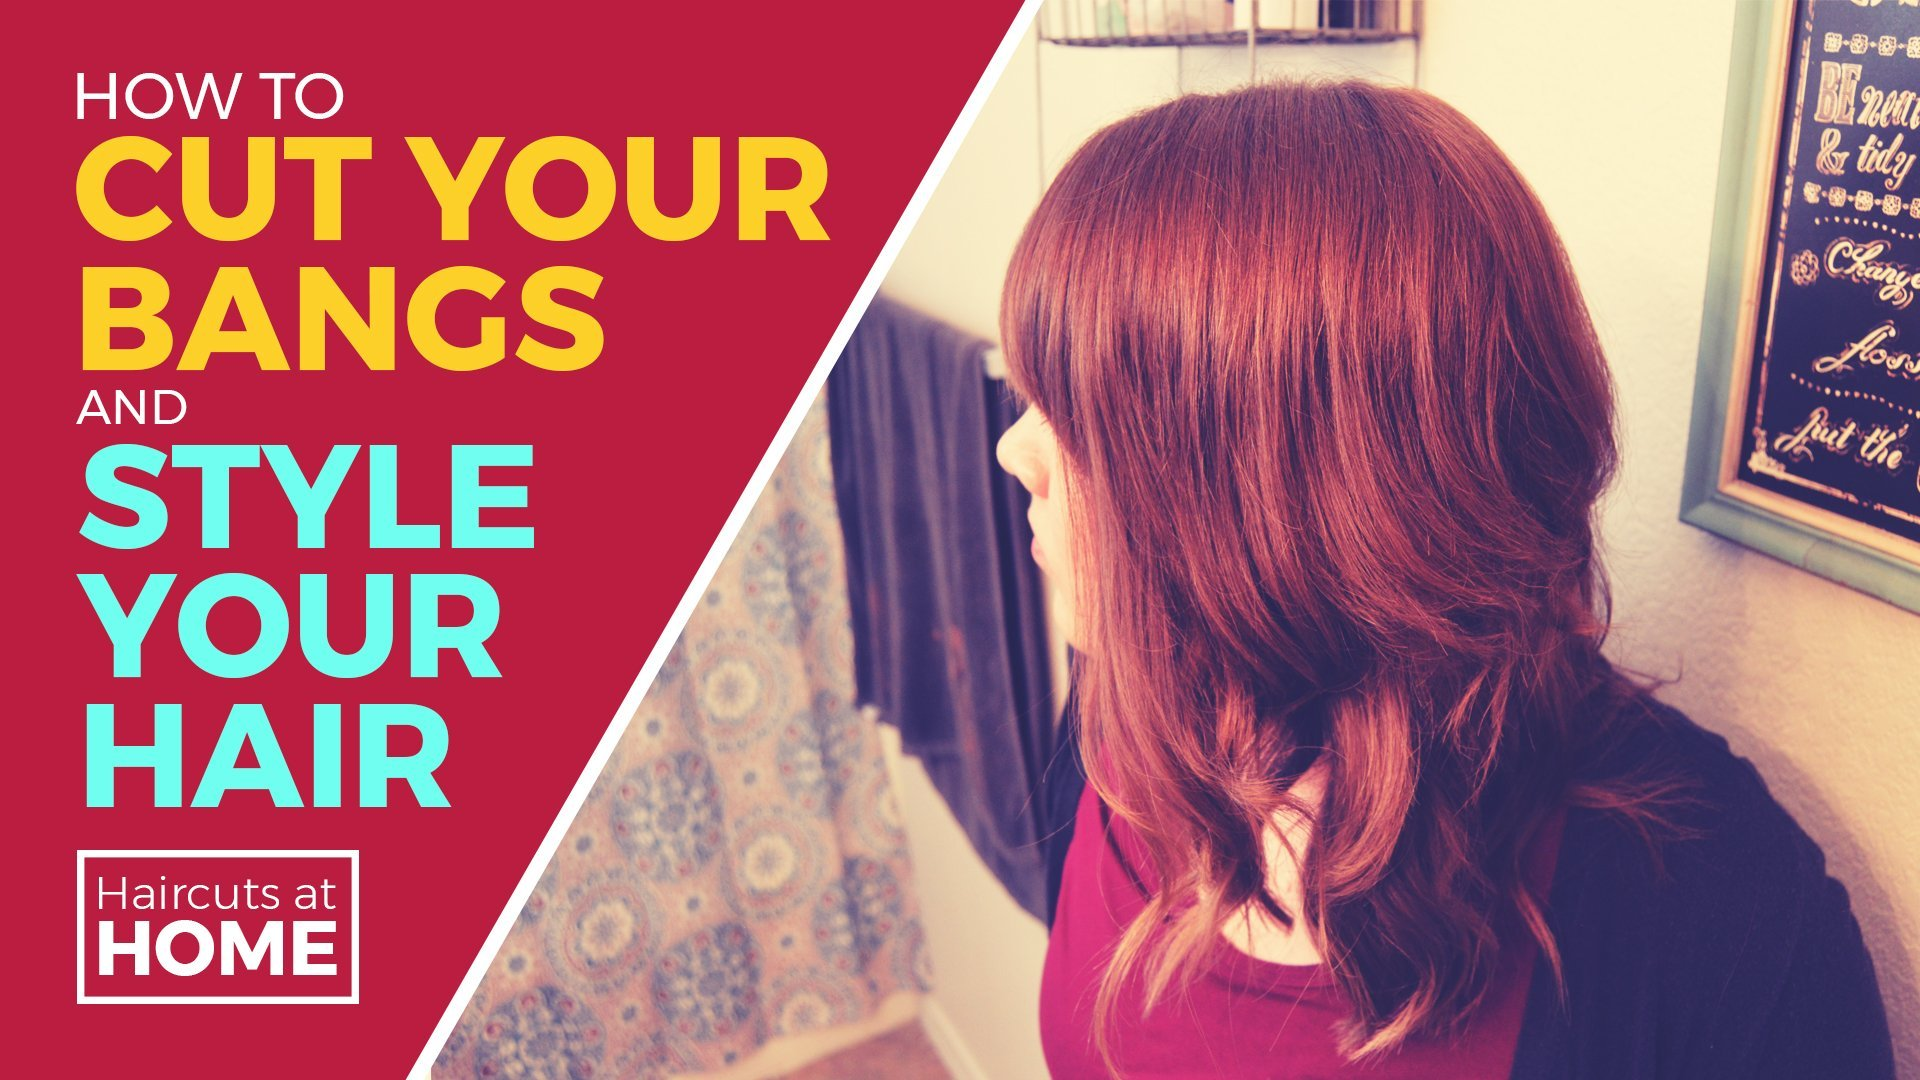 How To Cut Your Own Bangs And Style Your Hair Rebekah Buck